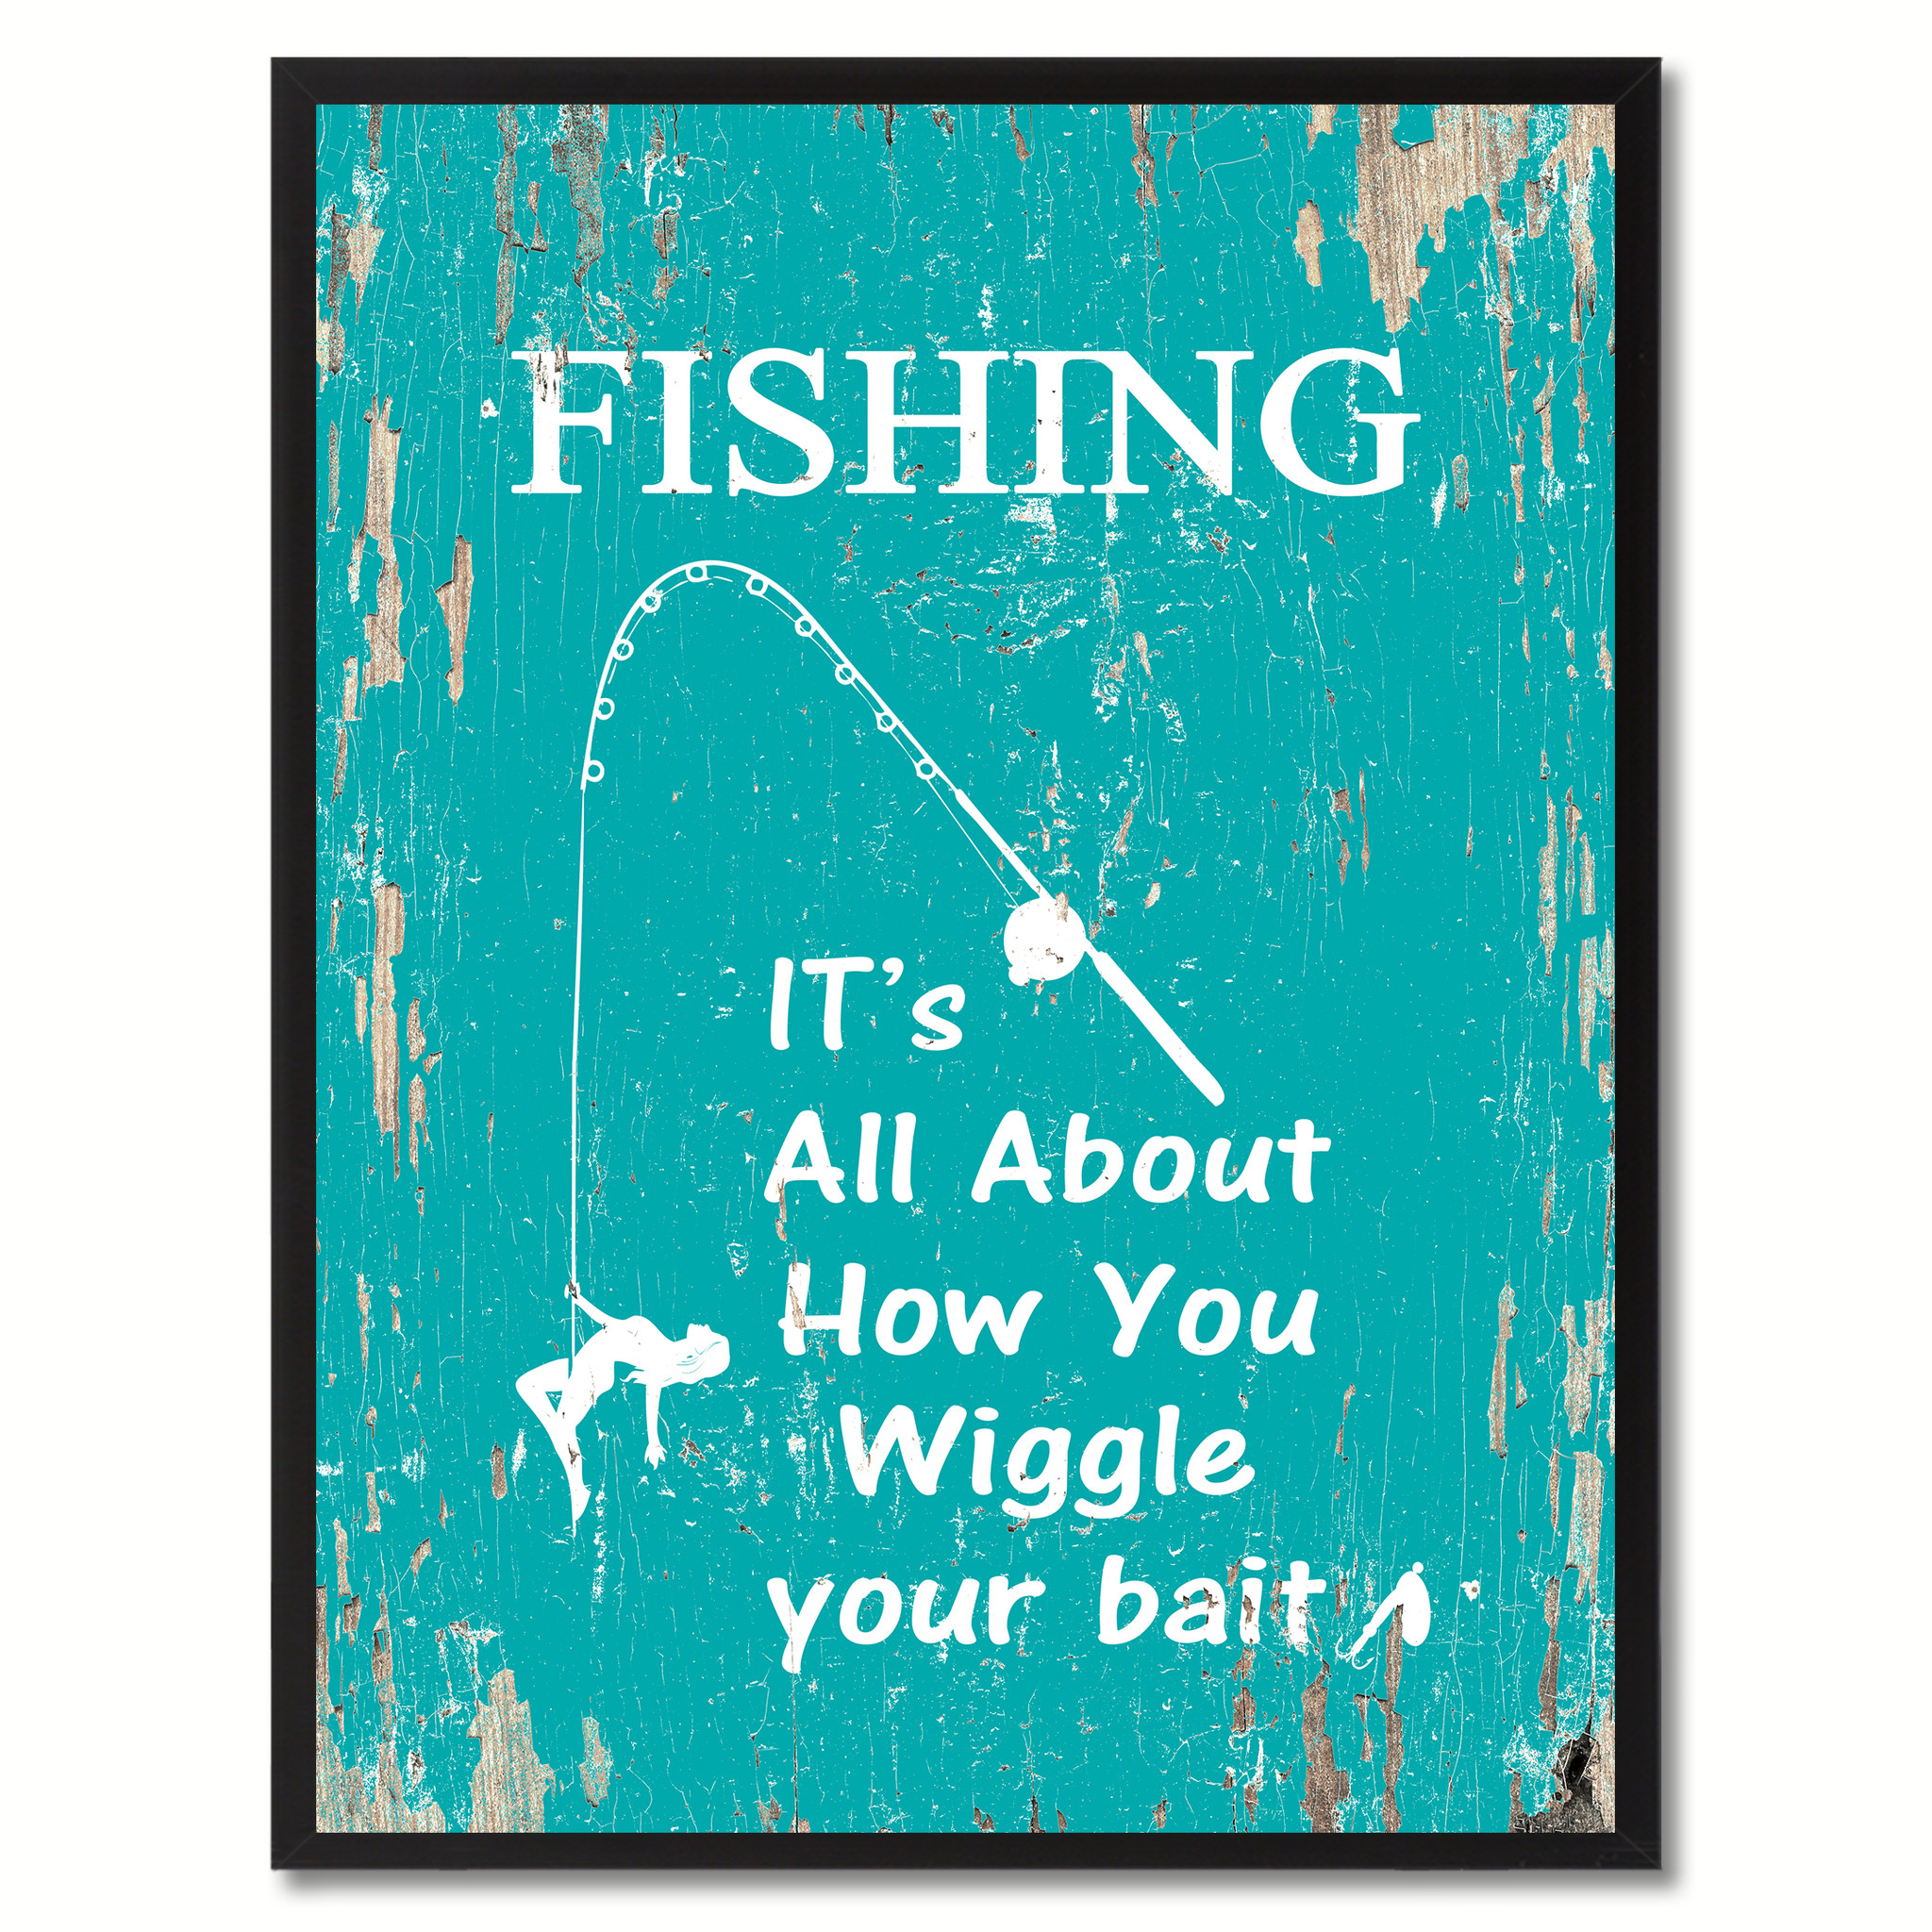 """Fishing It's All About How You Wiggle Your Bait Saying Canvas Print Picture Frame Home Decor Wall Art Gifts 120055 - 7\""""x9\"""""""